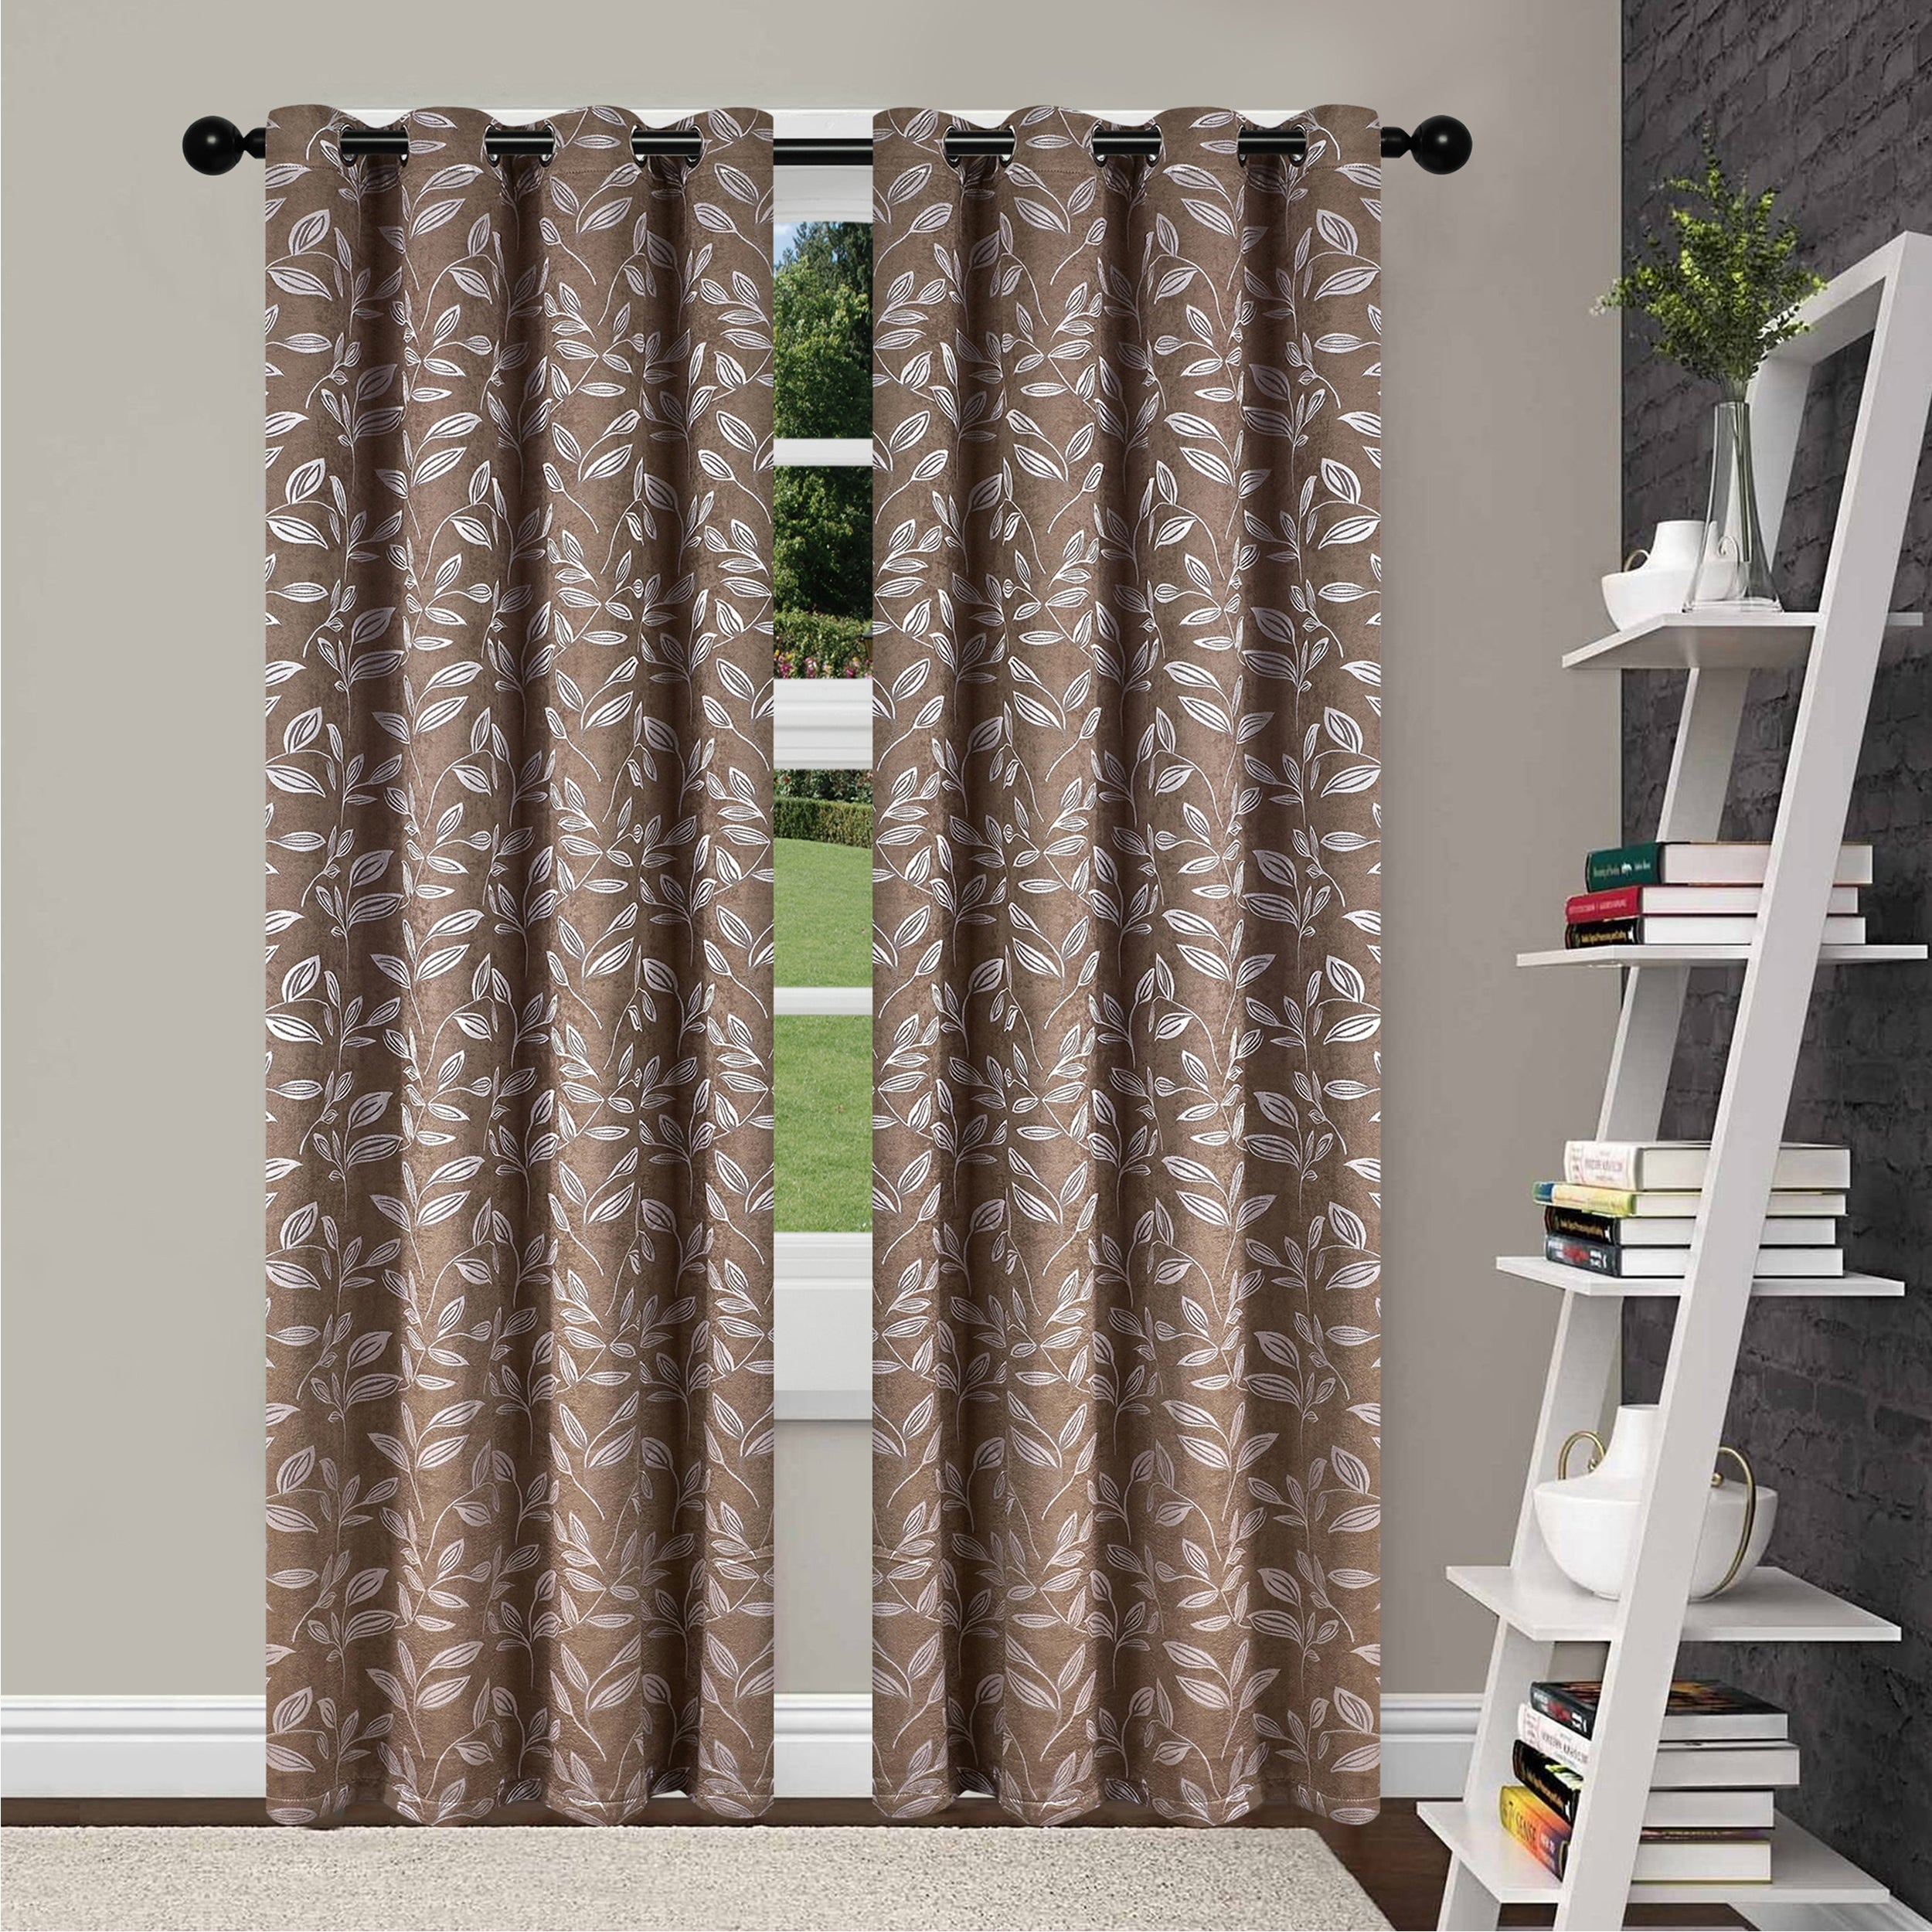 Details About Superior Leaves Insulated Thermal Blackout Grommet Curtain With Superior Solid Insulated Thermal Blackout Grommet Curtain Panel Pairs (View 18 of 30)